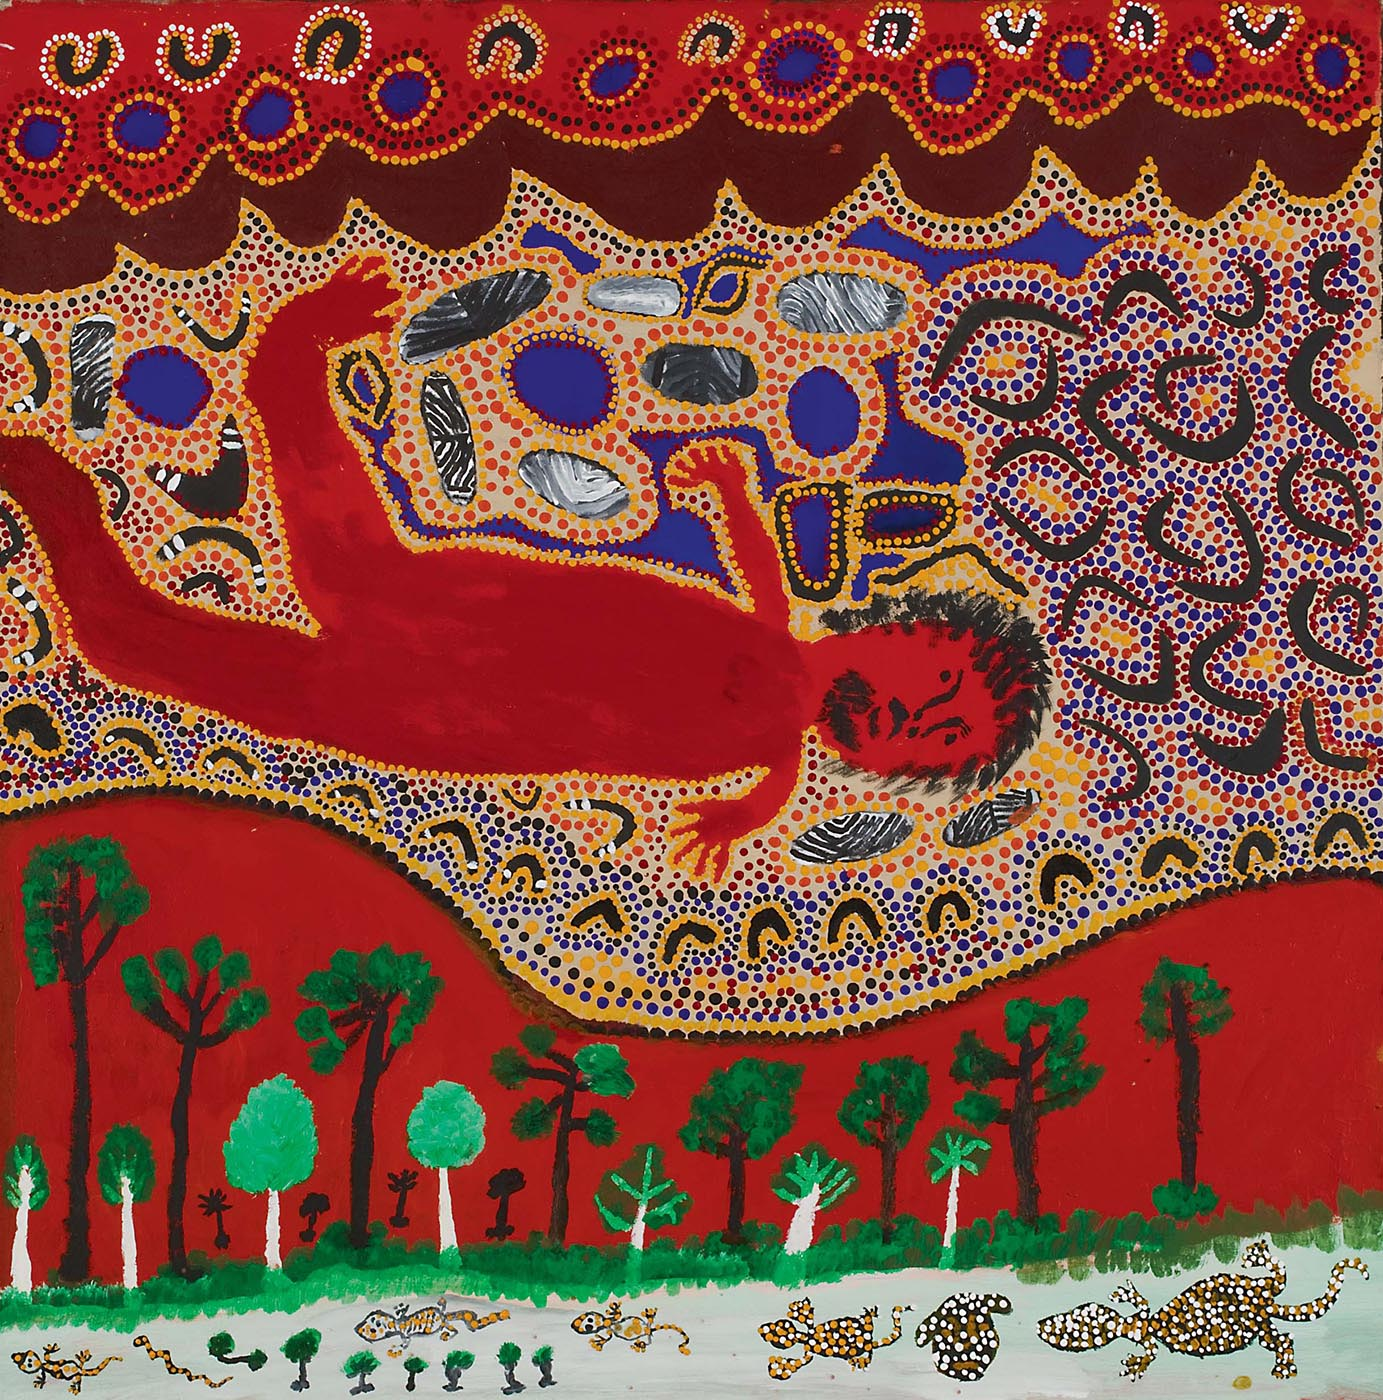 Kumpupirntily Cannibal Story 2008 by Billy Atkins, Martumili Artists. Acrylic on canvas. - click to view larger image